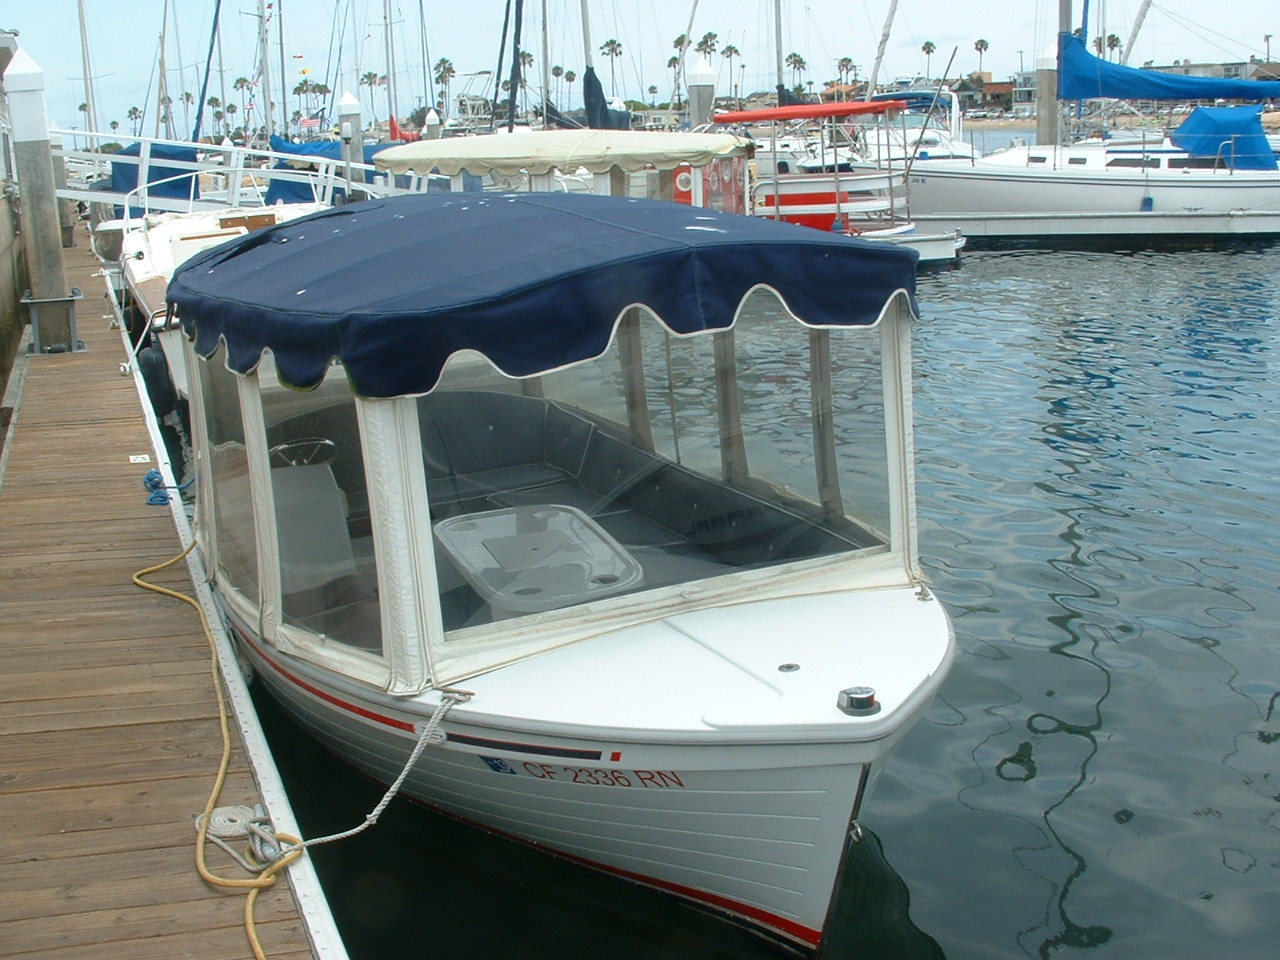 Used Duffy Electric Boats (714) 931-6710 or boseyachts@mac